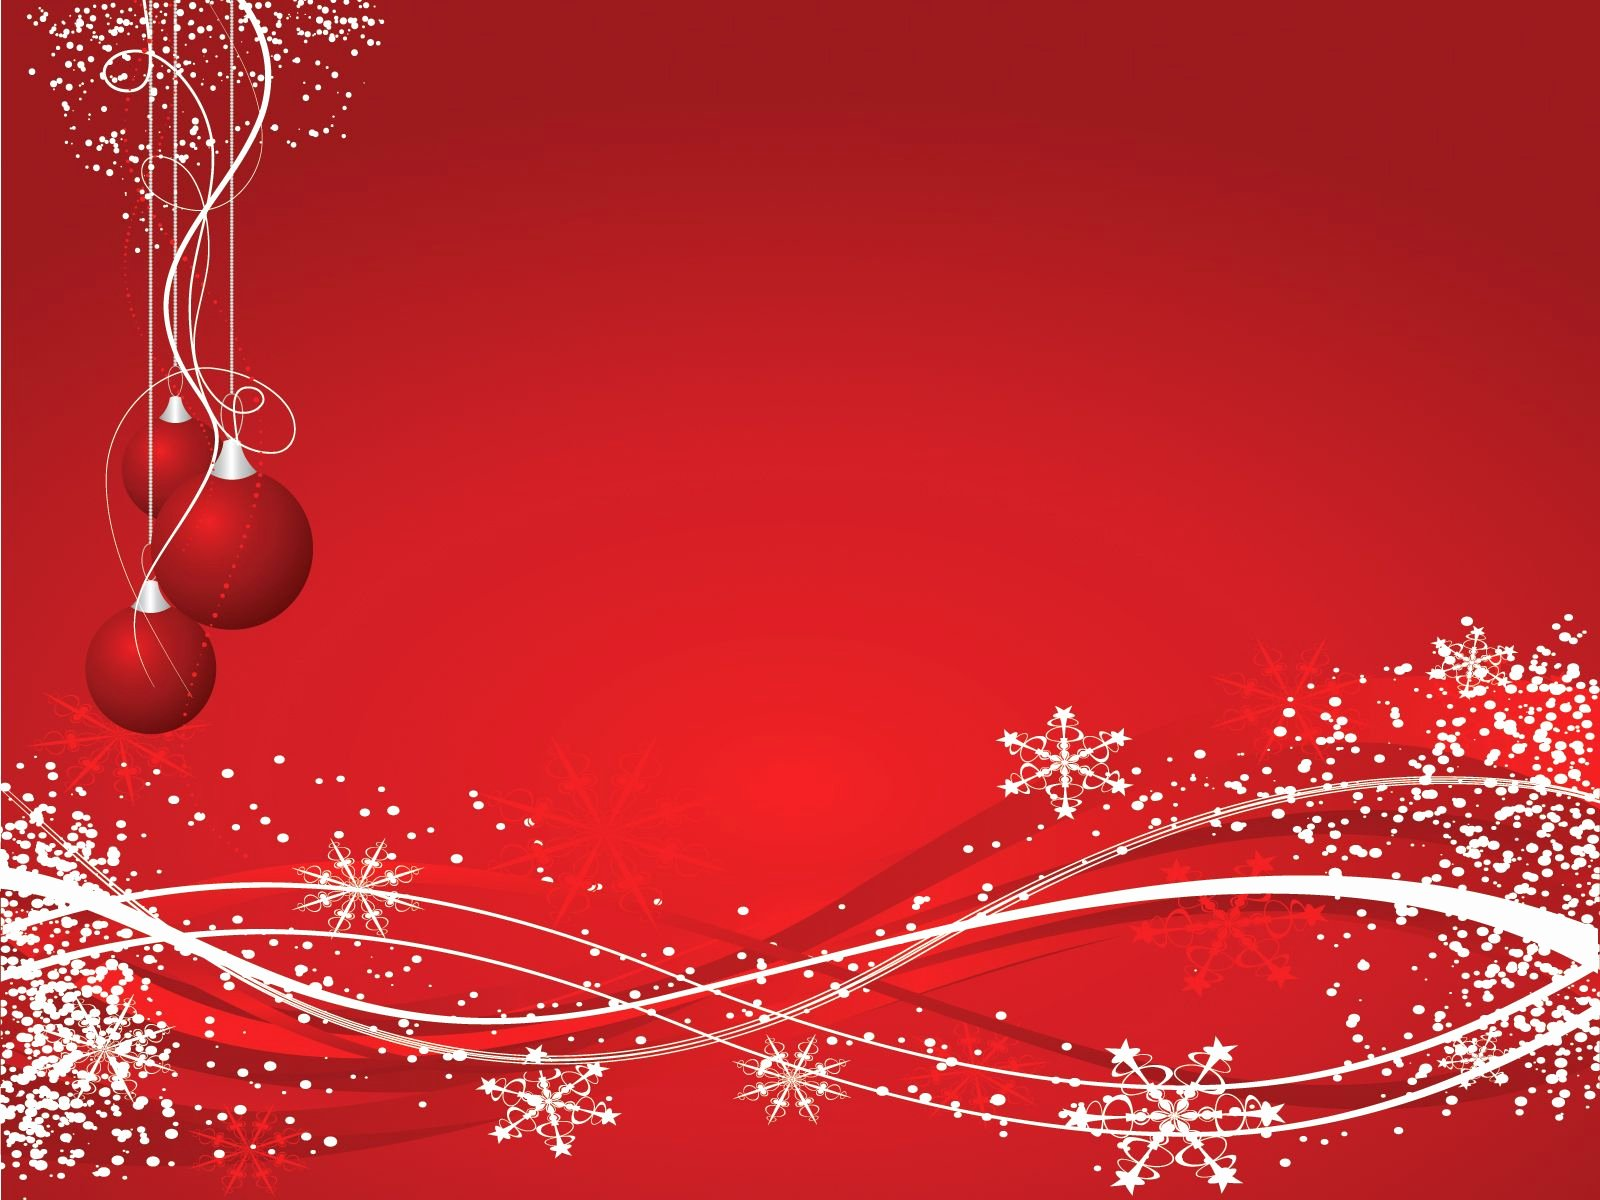 Free Christmas Photo Templates Awesome Xmas Snowflakes Powerpoint Templates Christmas Red